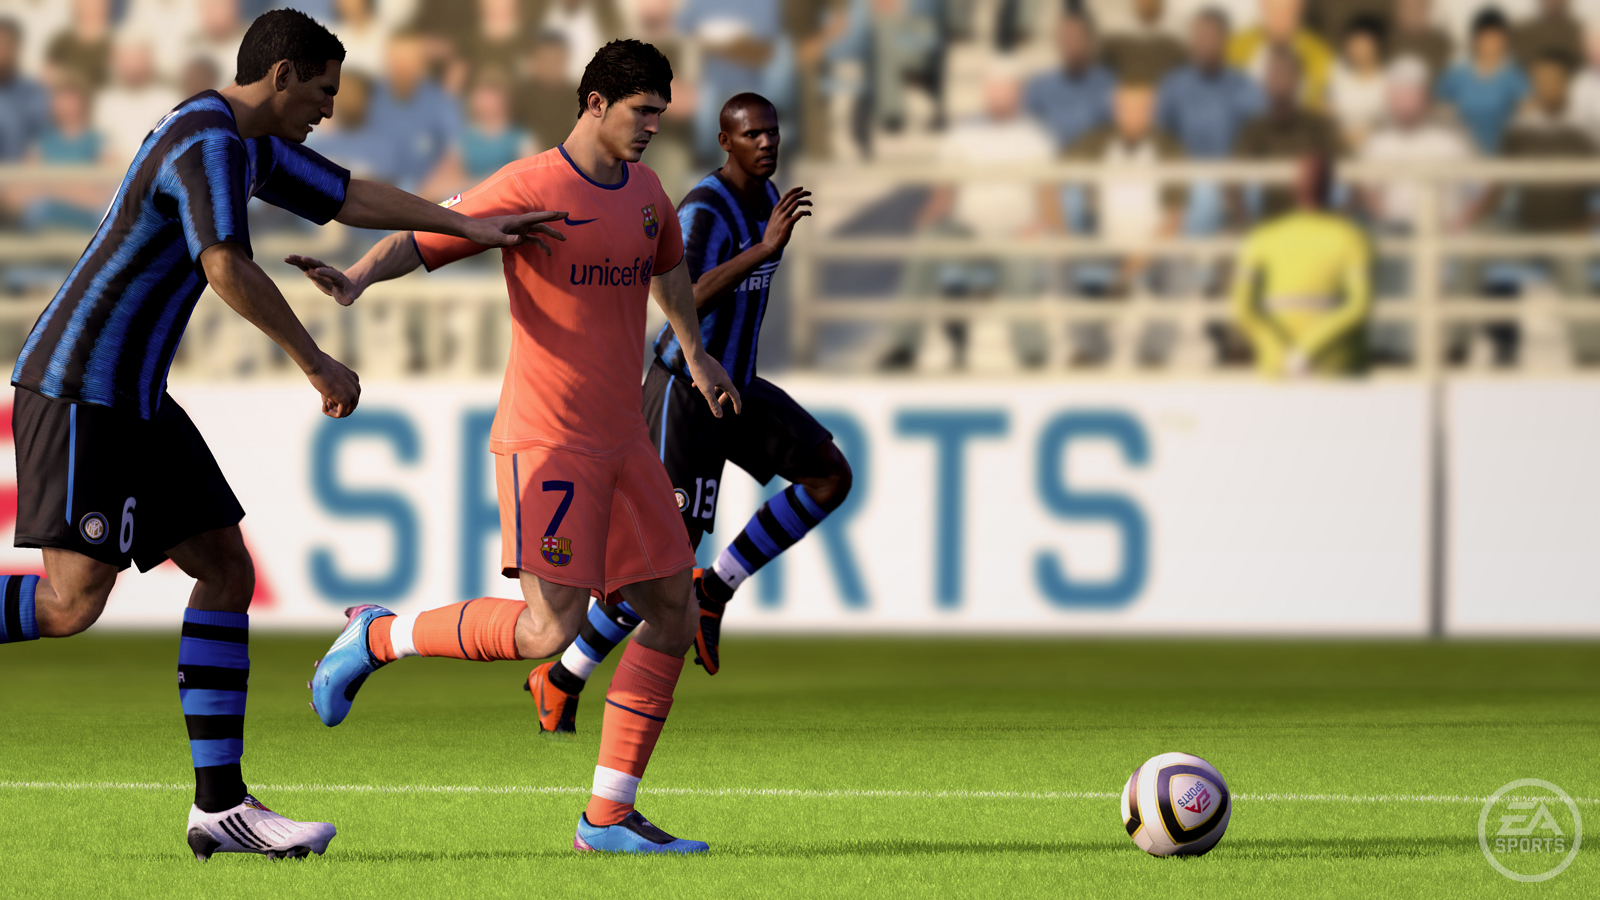 Fifa 11 free download full version pc game for windows (xp, 7, 8.